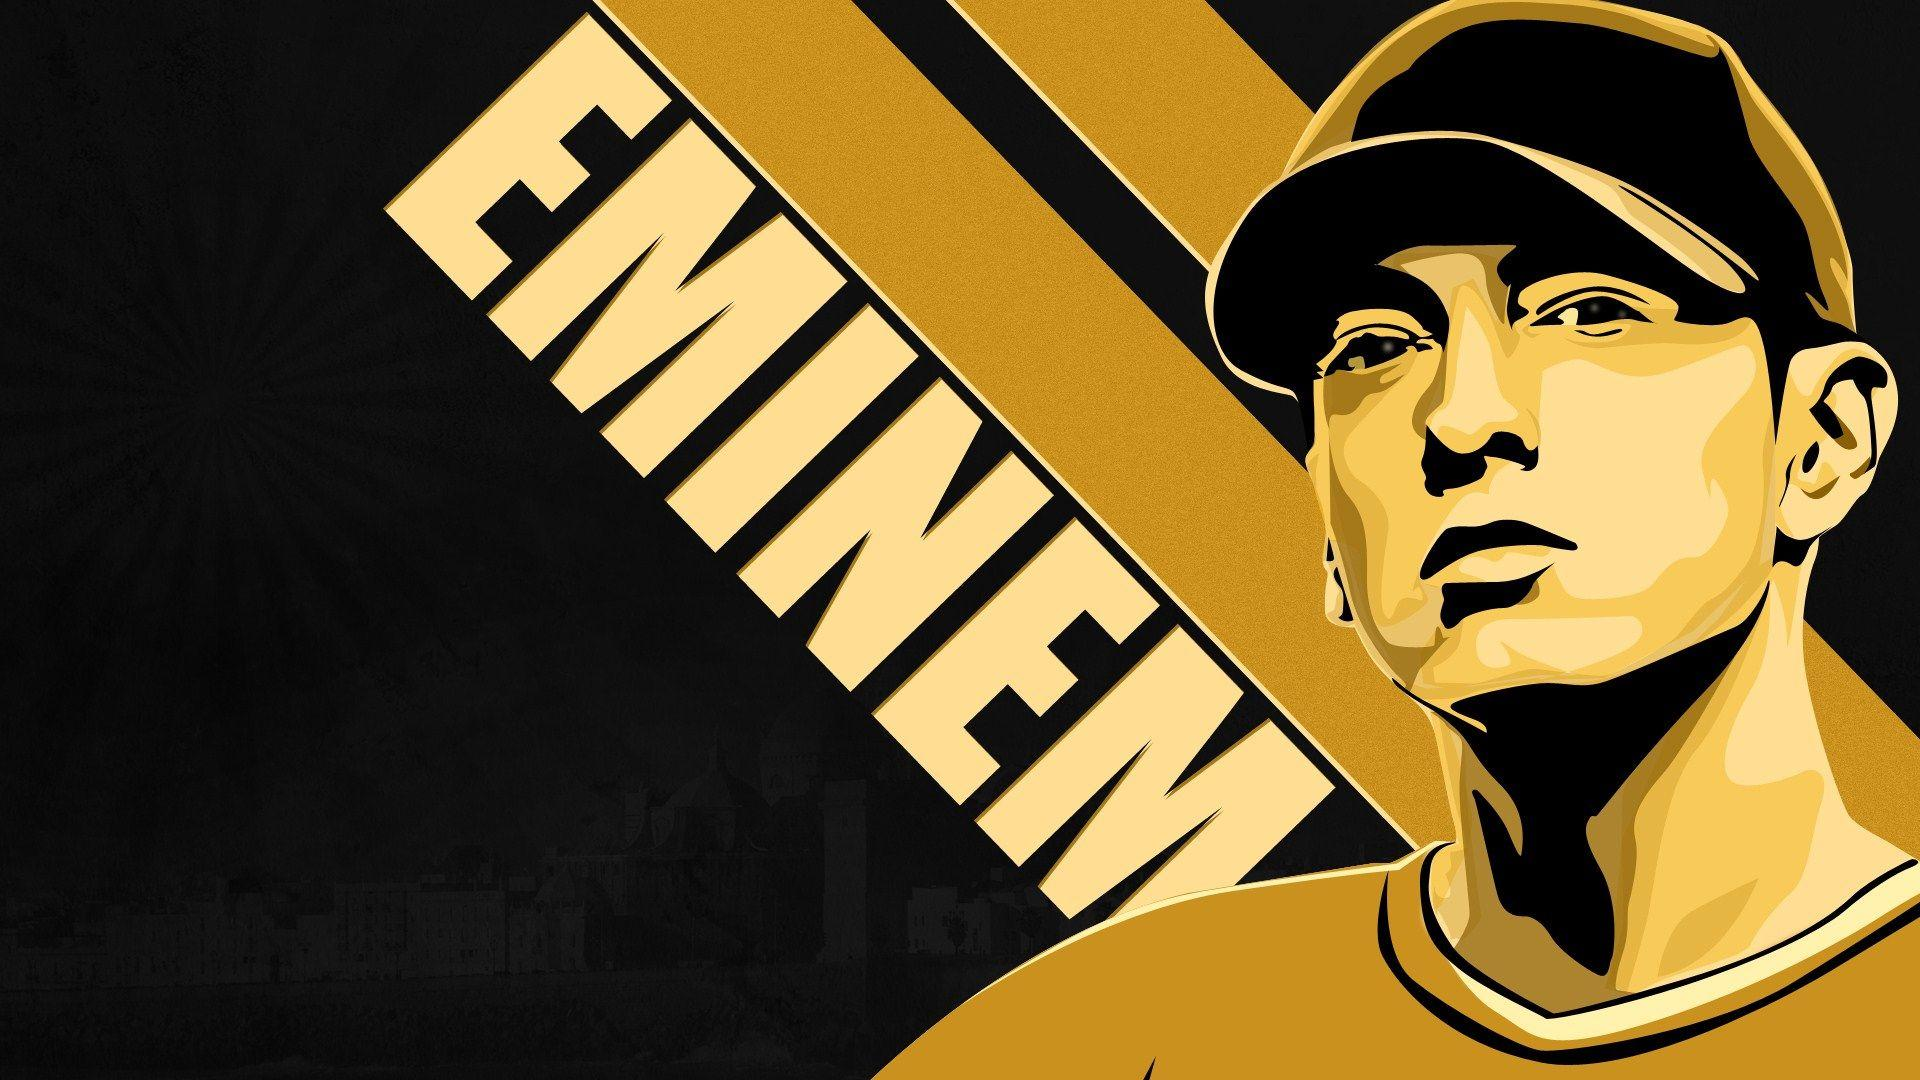 eminem wallpapers - photo #32